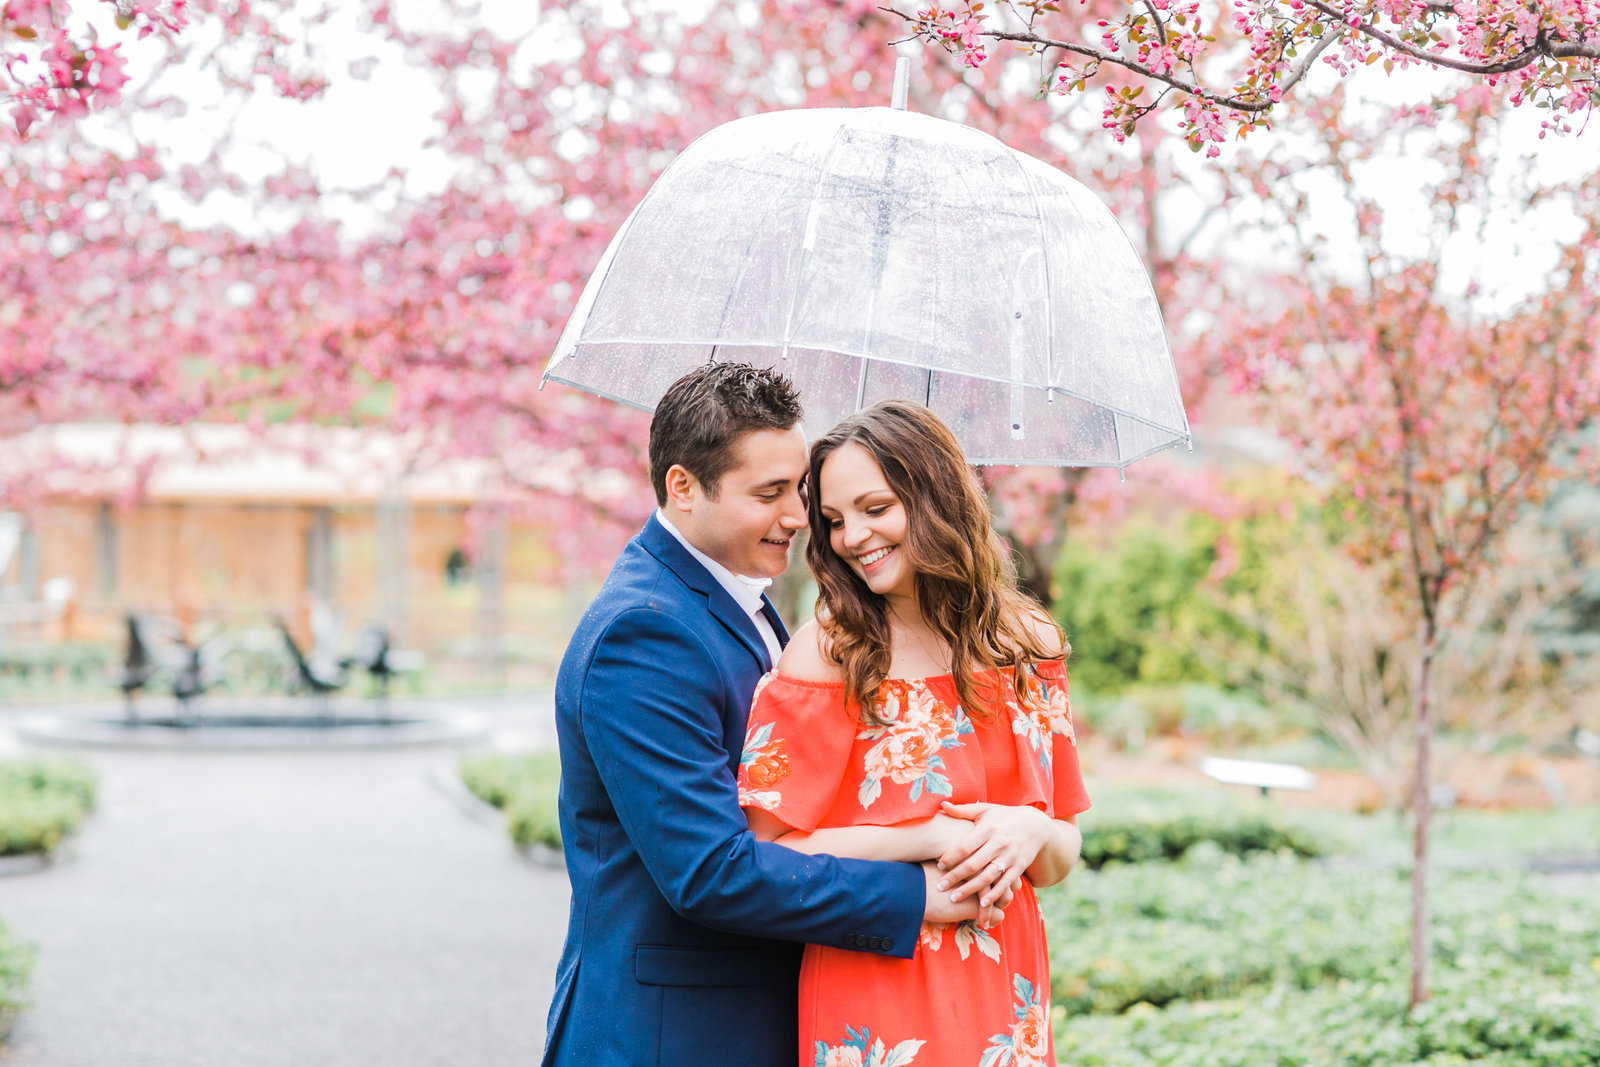 Ale hugging Suzie under a clear umbrella while Suzie laughs and they are standing in front of pink blooming crab apple trees